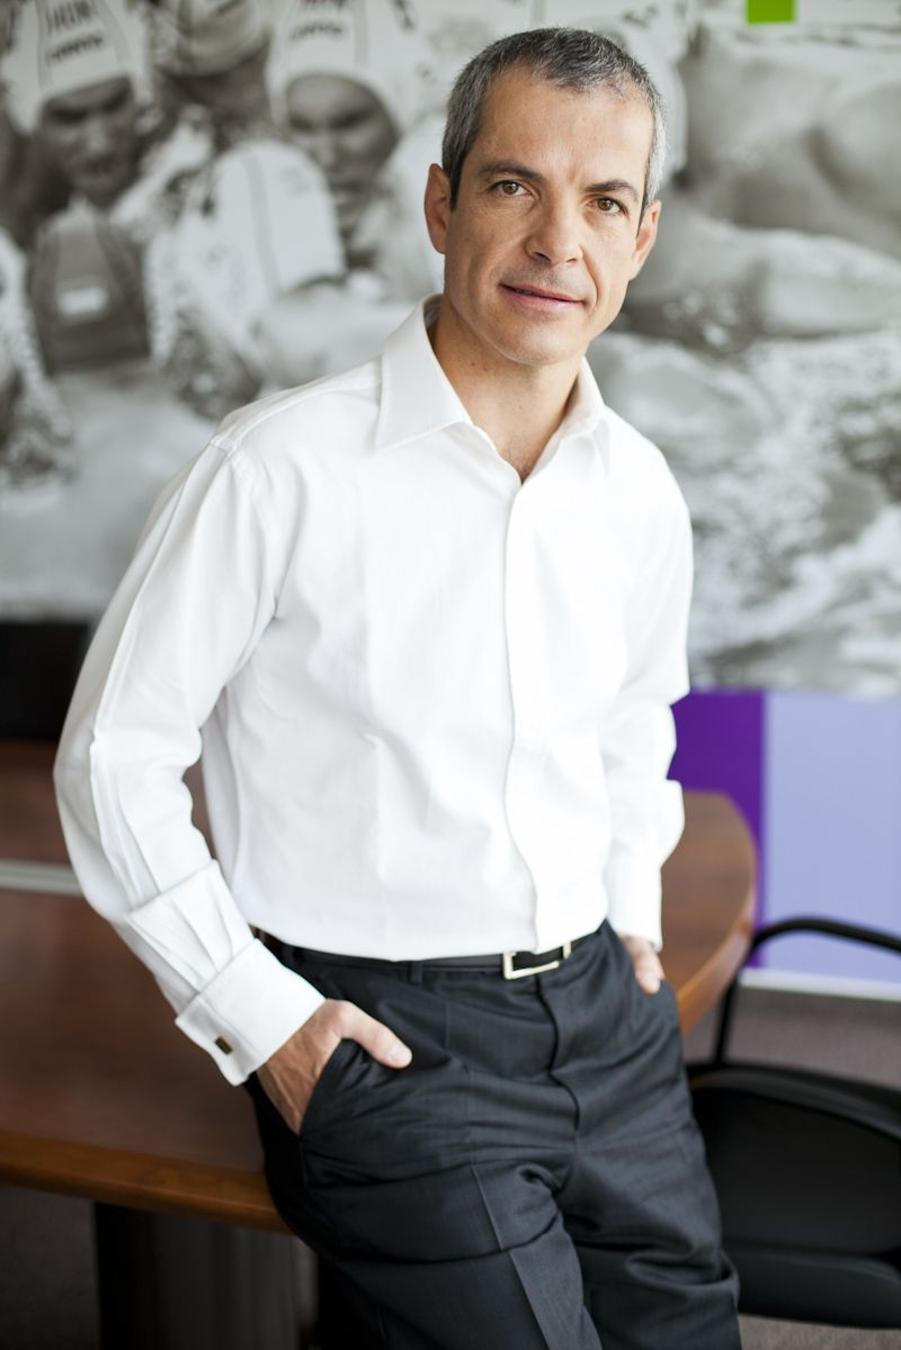 Diego Massidda, Former Chief Executive Officer, Vodafone Hungary